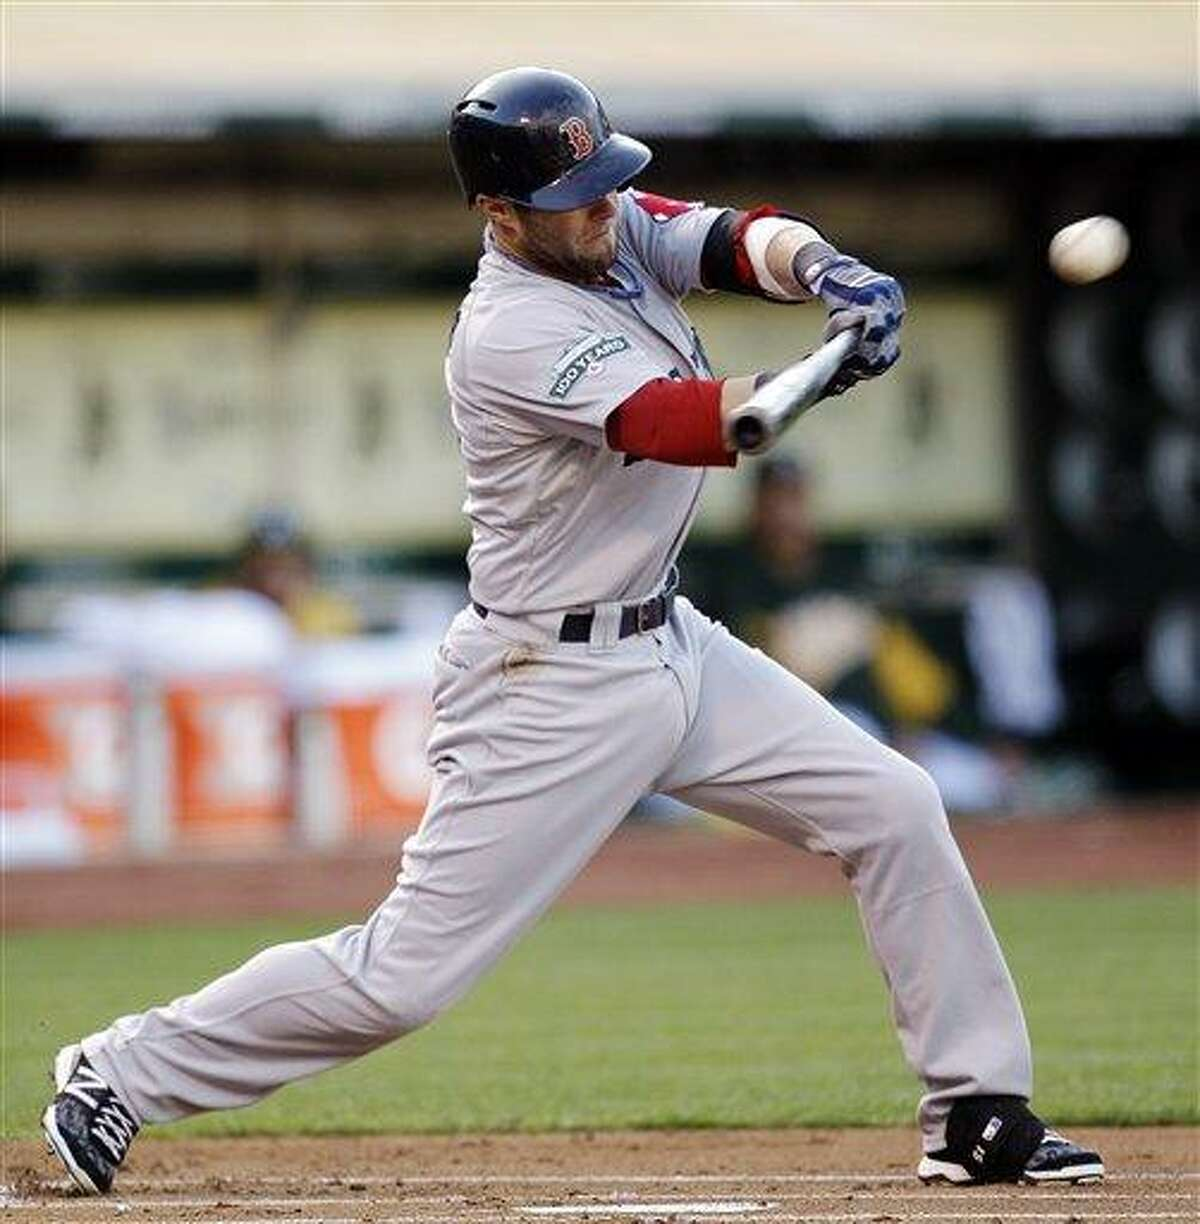 Boston Red Sox's Dustin Pedroia connects for an RBI single off Oakland Athletics' Jarrod Parker in the first inning of a baseball game, Monday, July 2, 2012, in San Francisco. (AP Photo/Ben Margot)